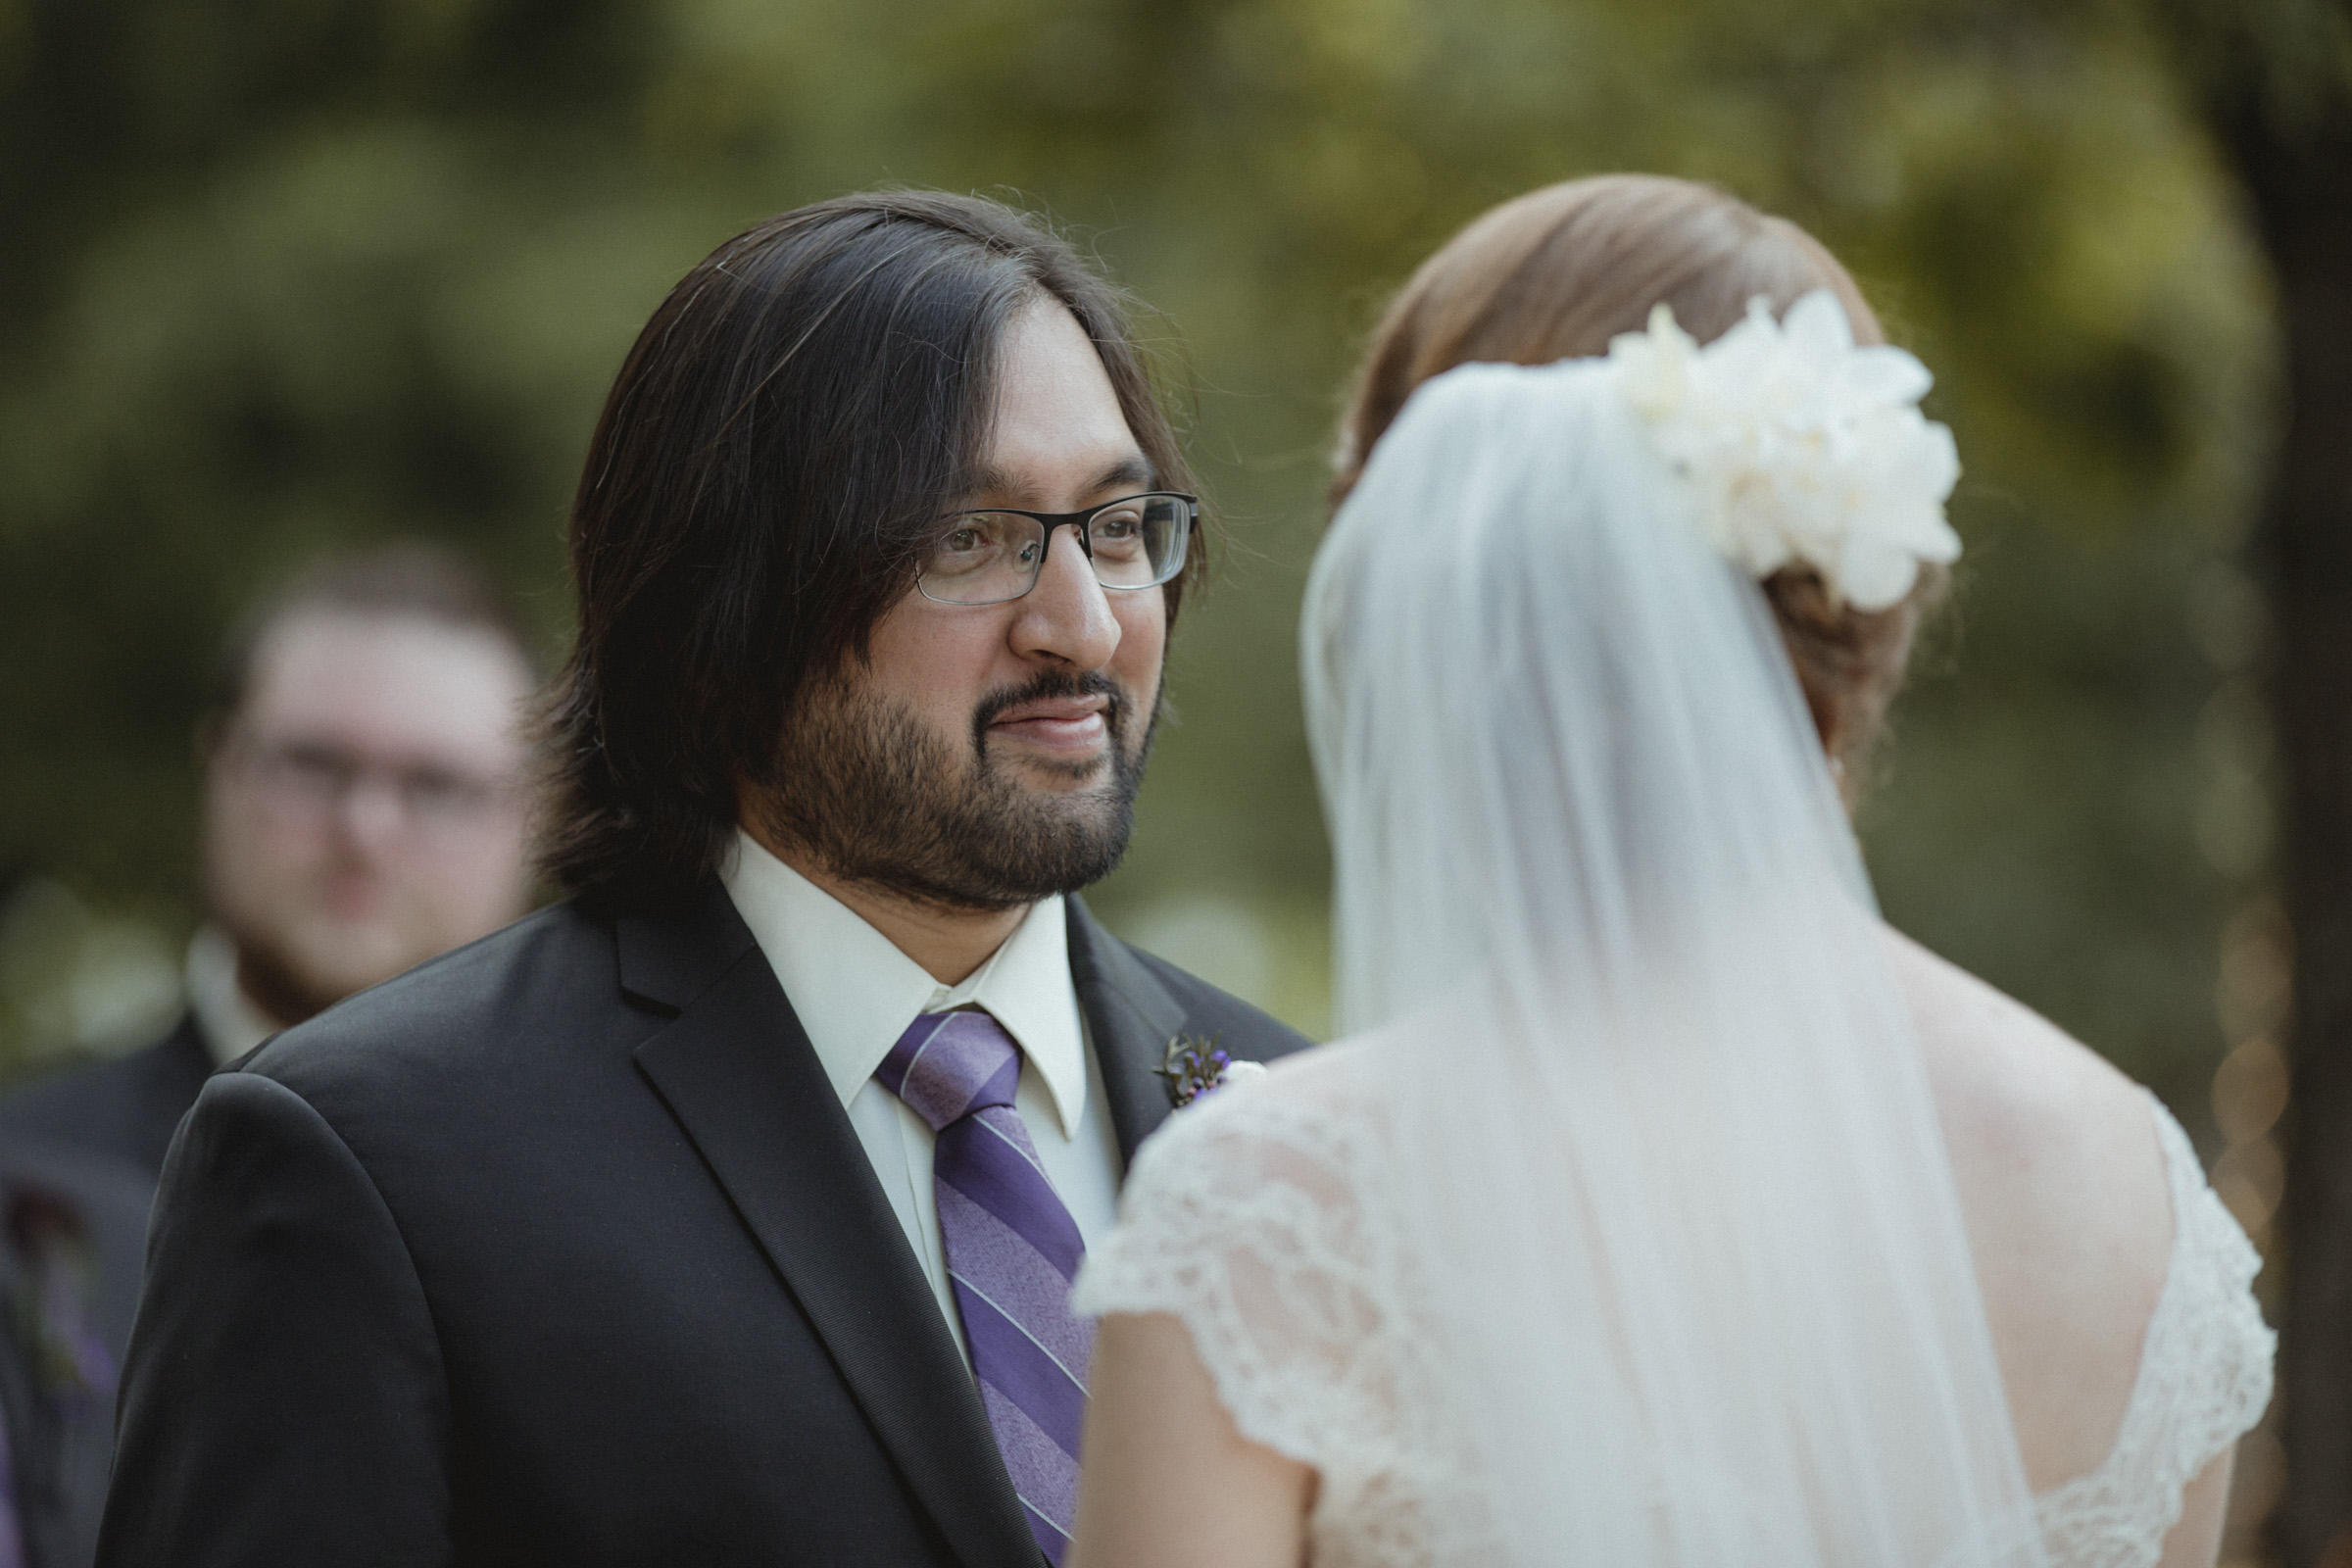 Groom smiles at his bride during ceremony - - Estate at Florentine Gardens wedding - Hudson Valley Wedding - Kelsey & Anish's wedding - Amy Sims Photography